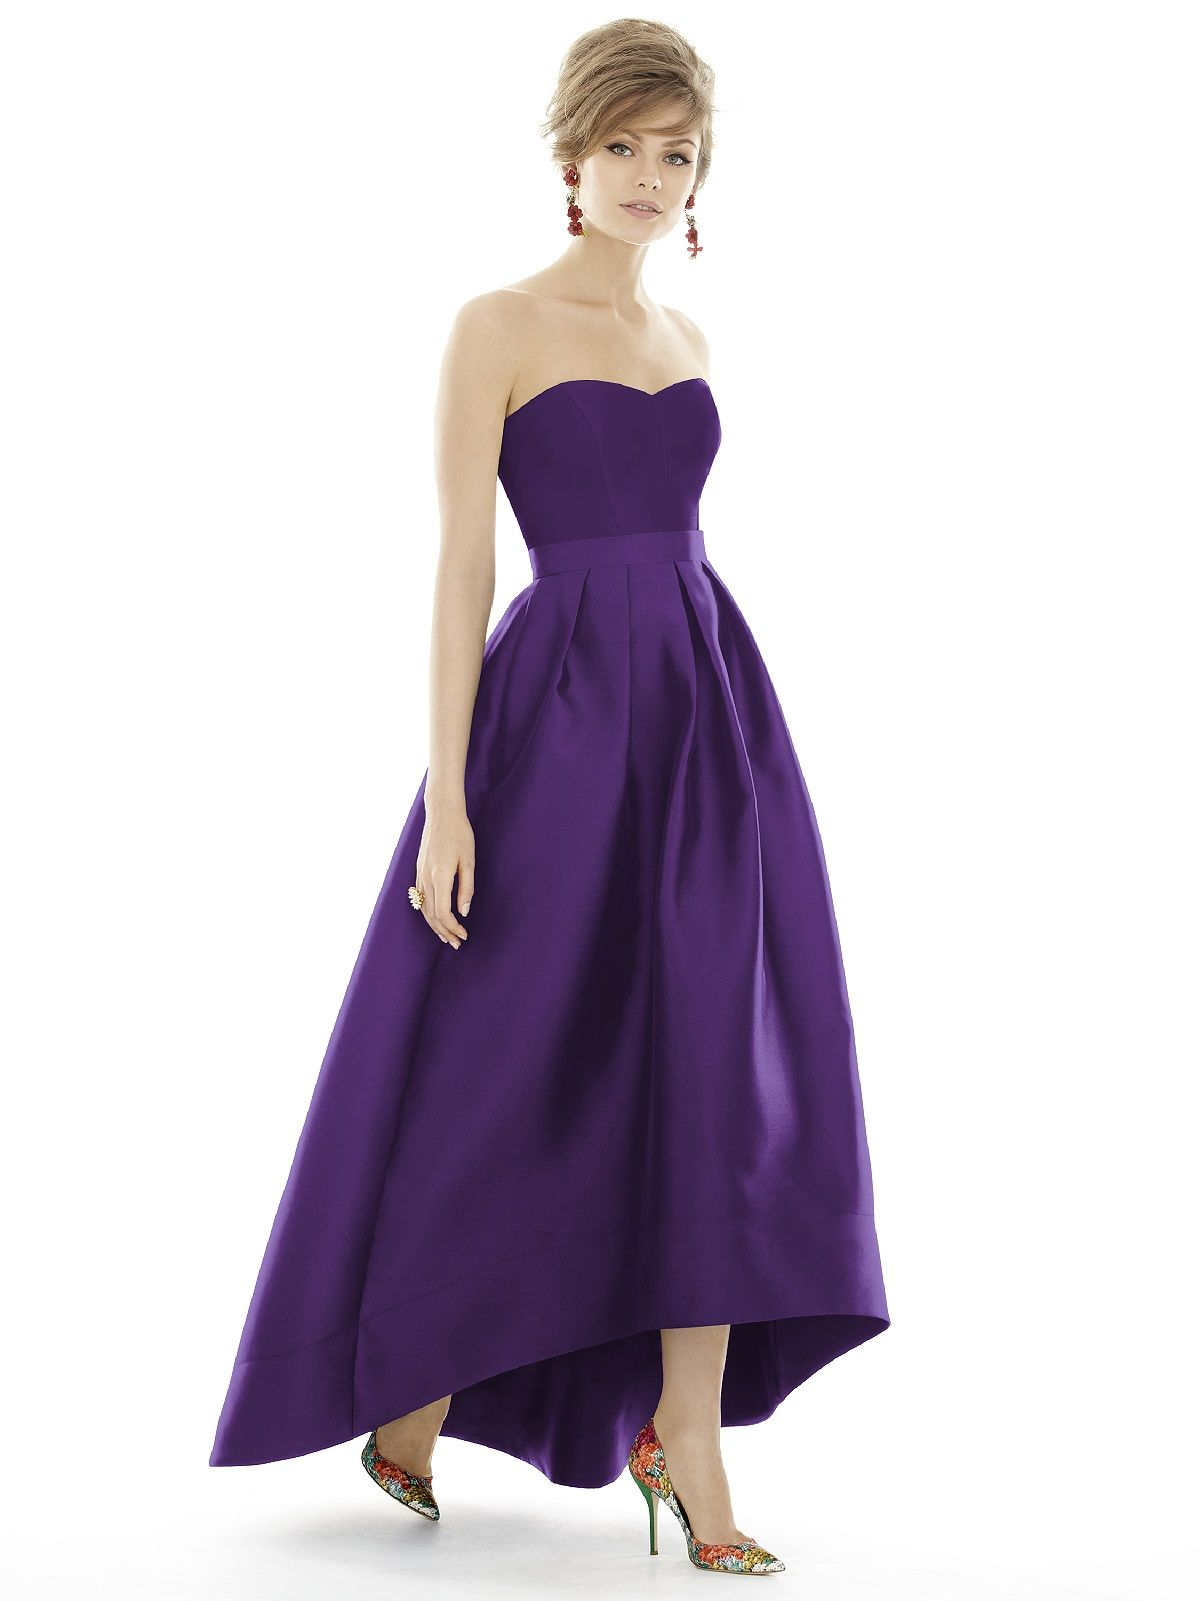 Shop alfred sung bridesmaid dress d699 in sateen twill at find the perfect made to order bridesmaid dresses for your bridal party in your favorite color style and fabric at weddington way ombrellifo Images